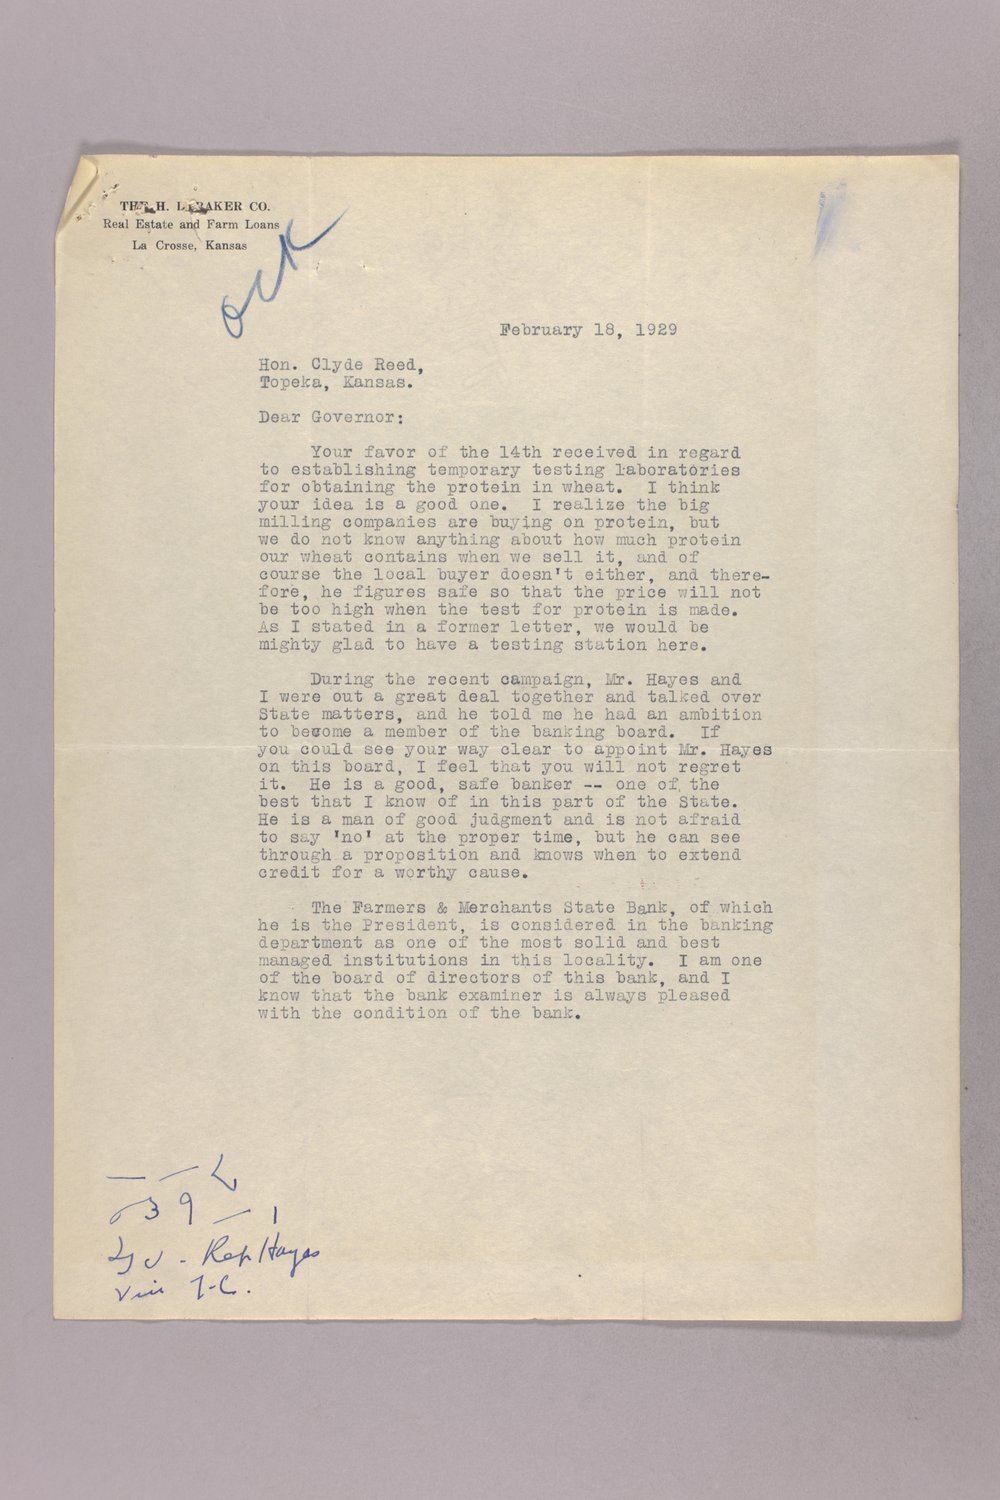 Governor Clyde M. Reed correspondence, Banking Board - 9